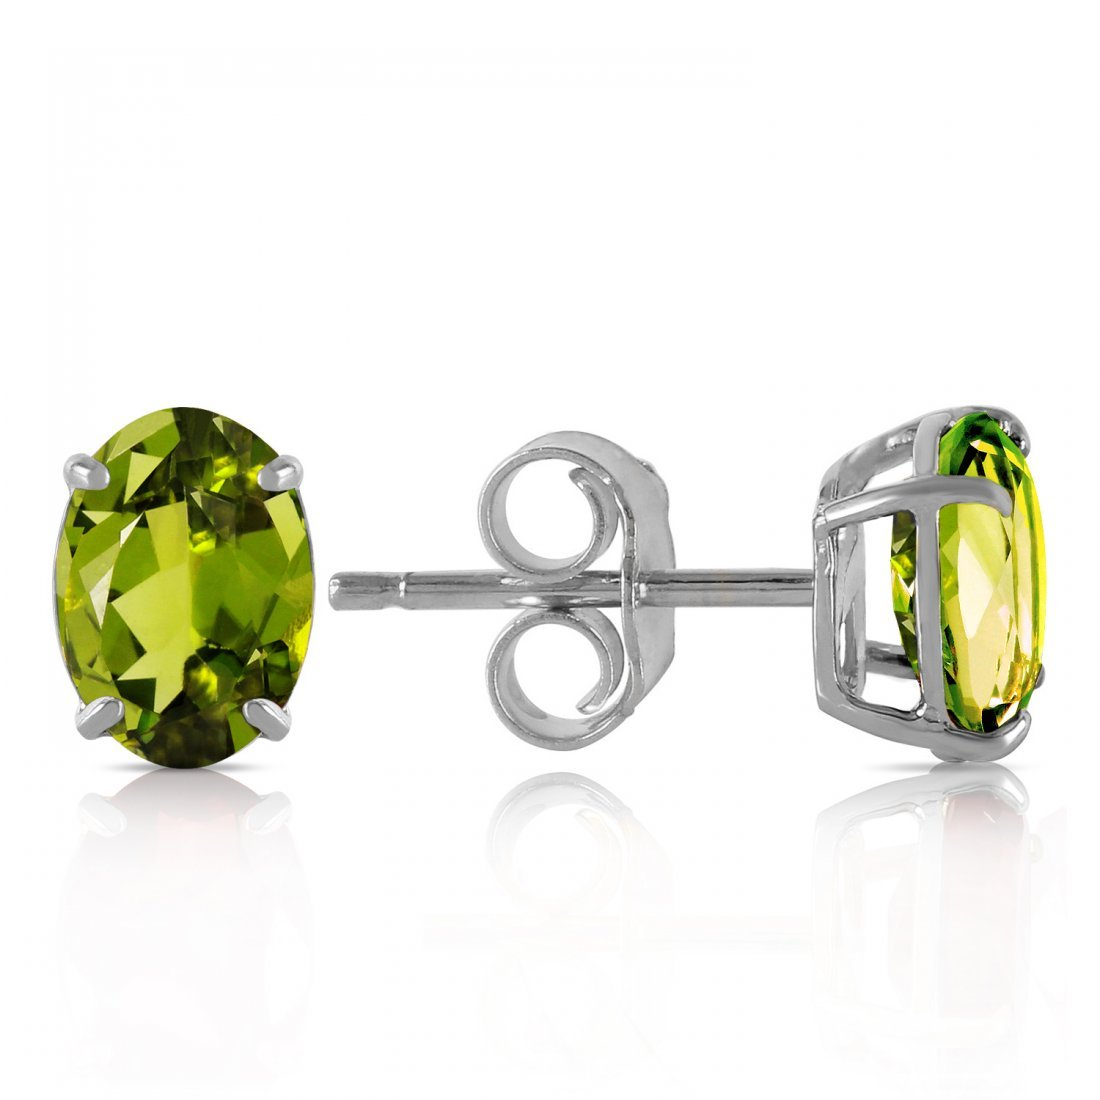 Genuine 1.80 ctw Peridot Earrings Jewelry 14KT White